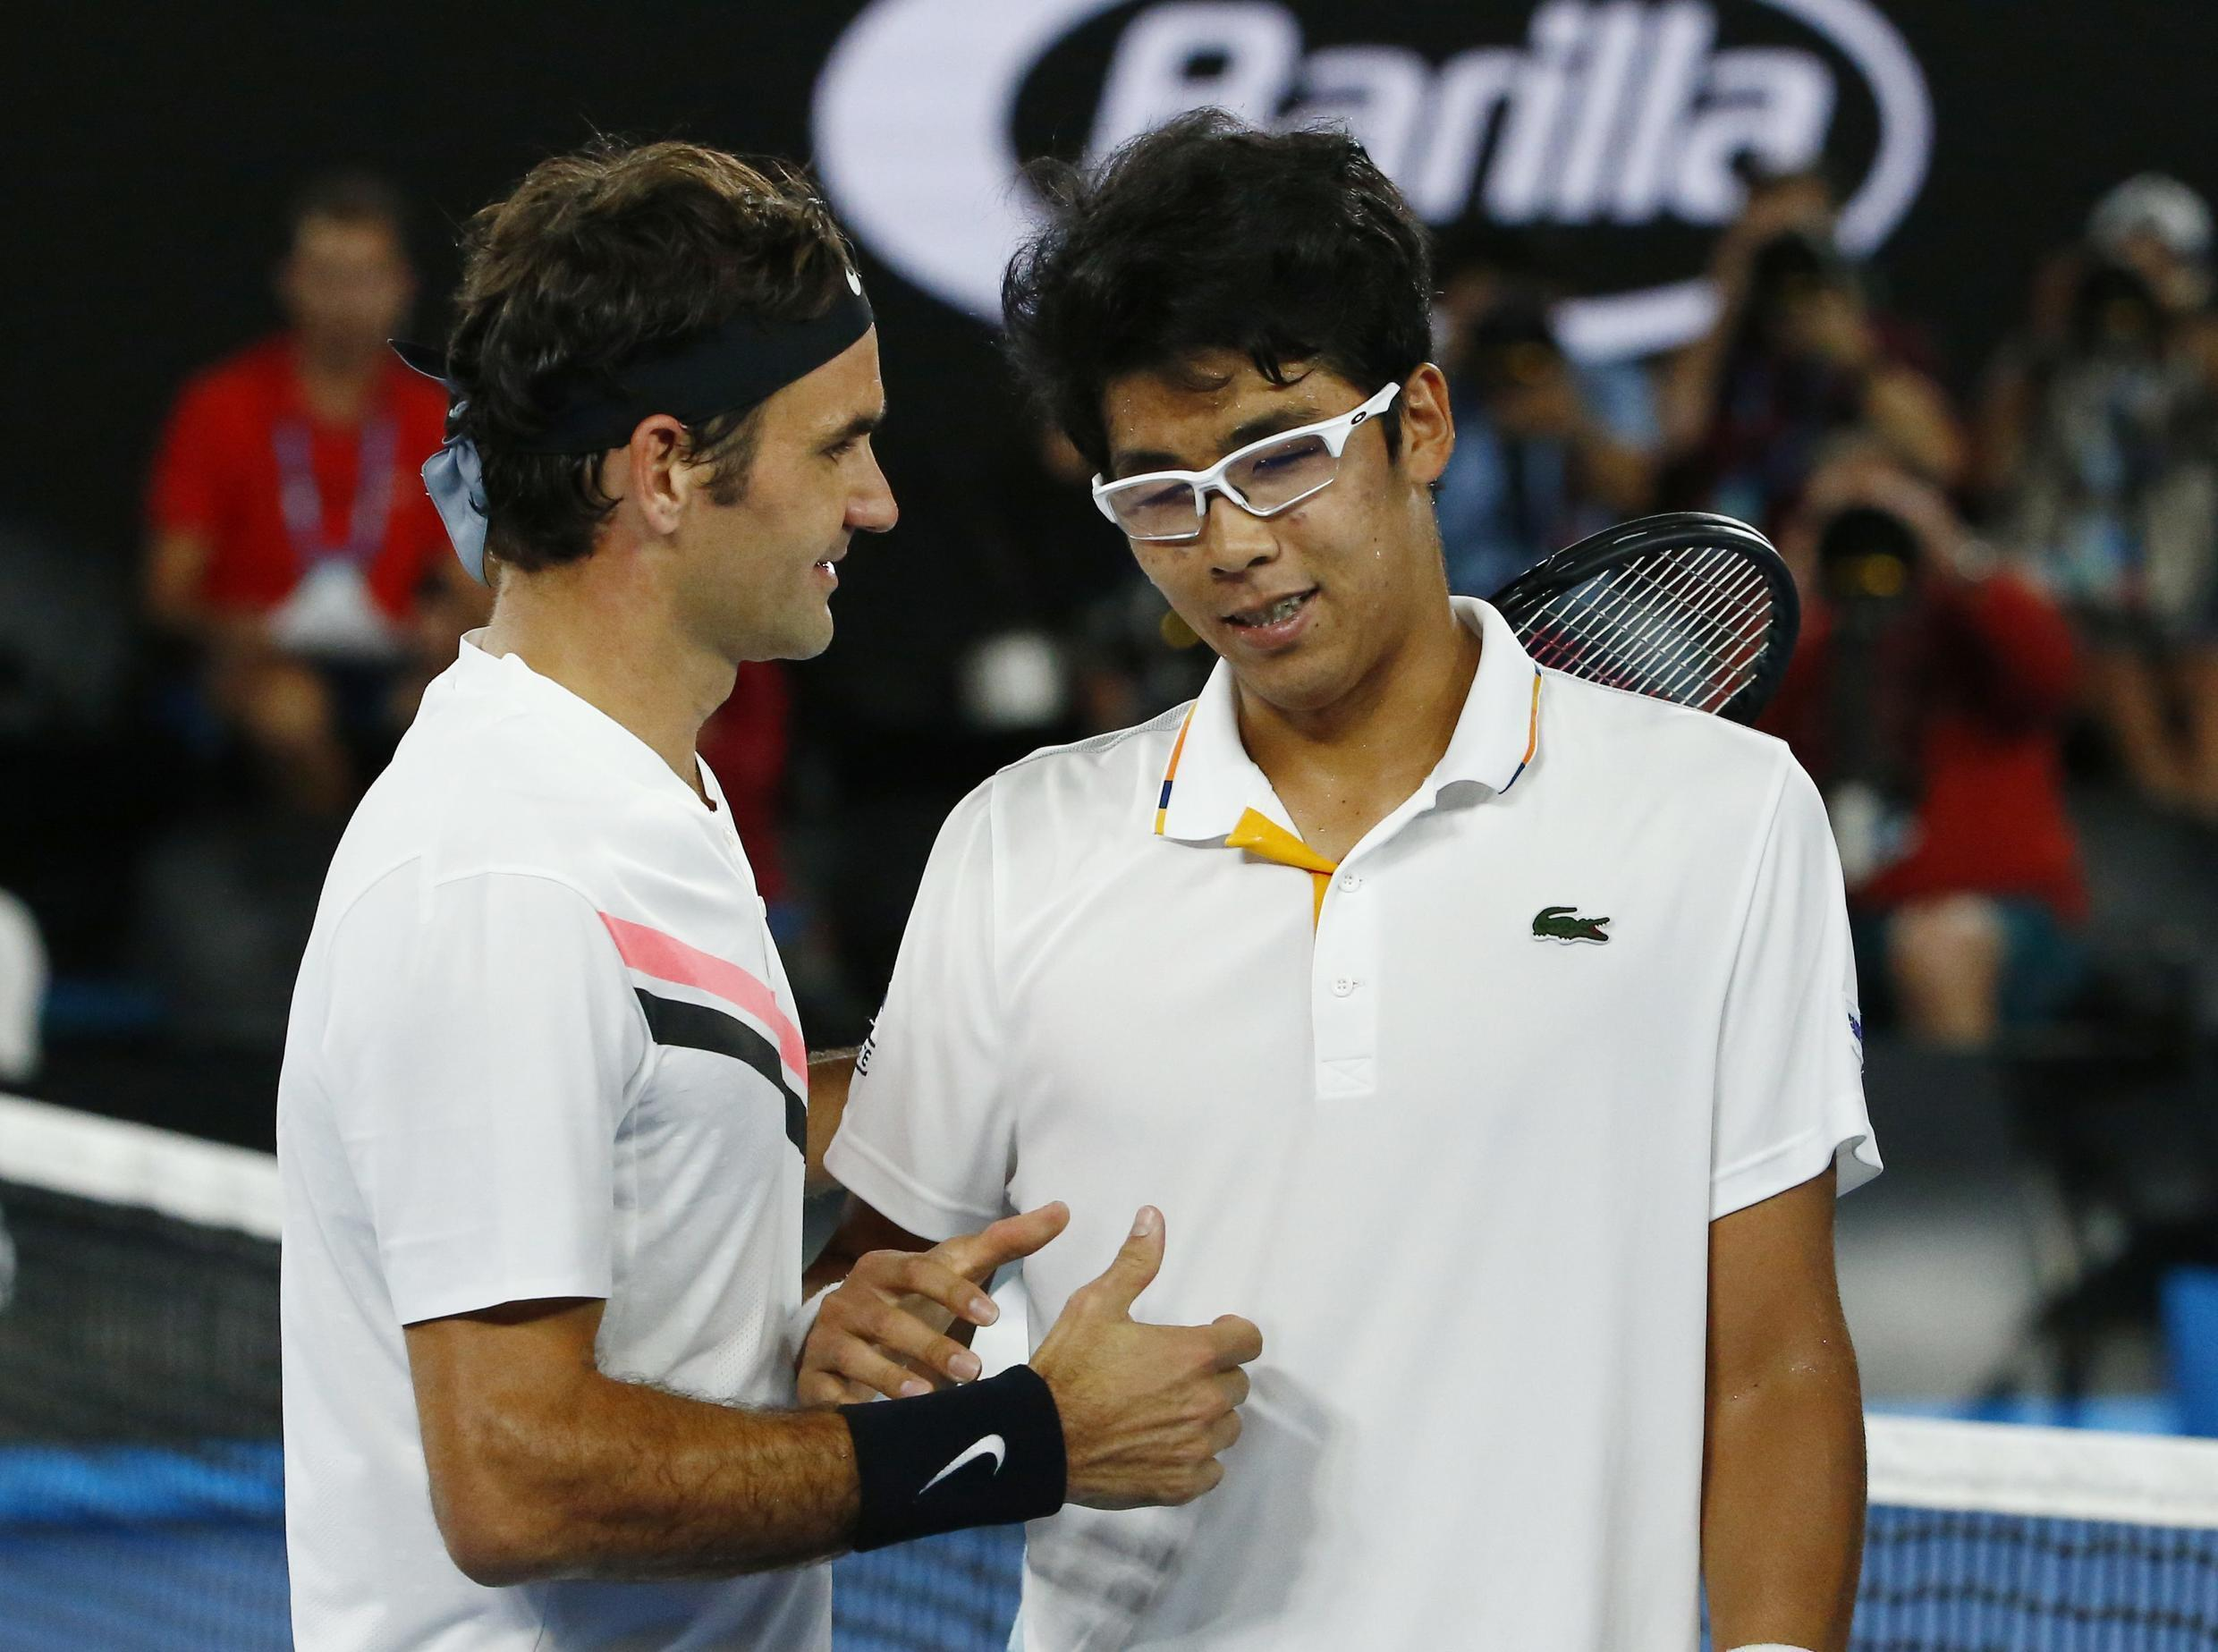 Roger Federer (left) consoles Hyeon Chung after he retired from their Australian Open semi-final.